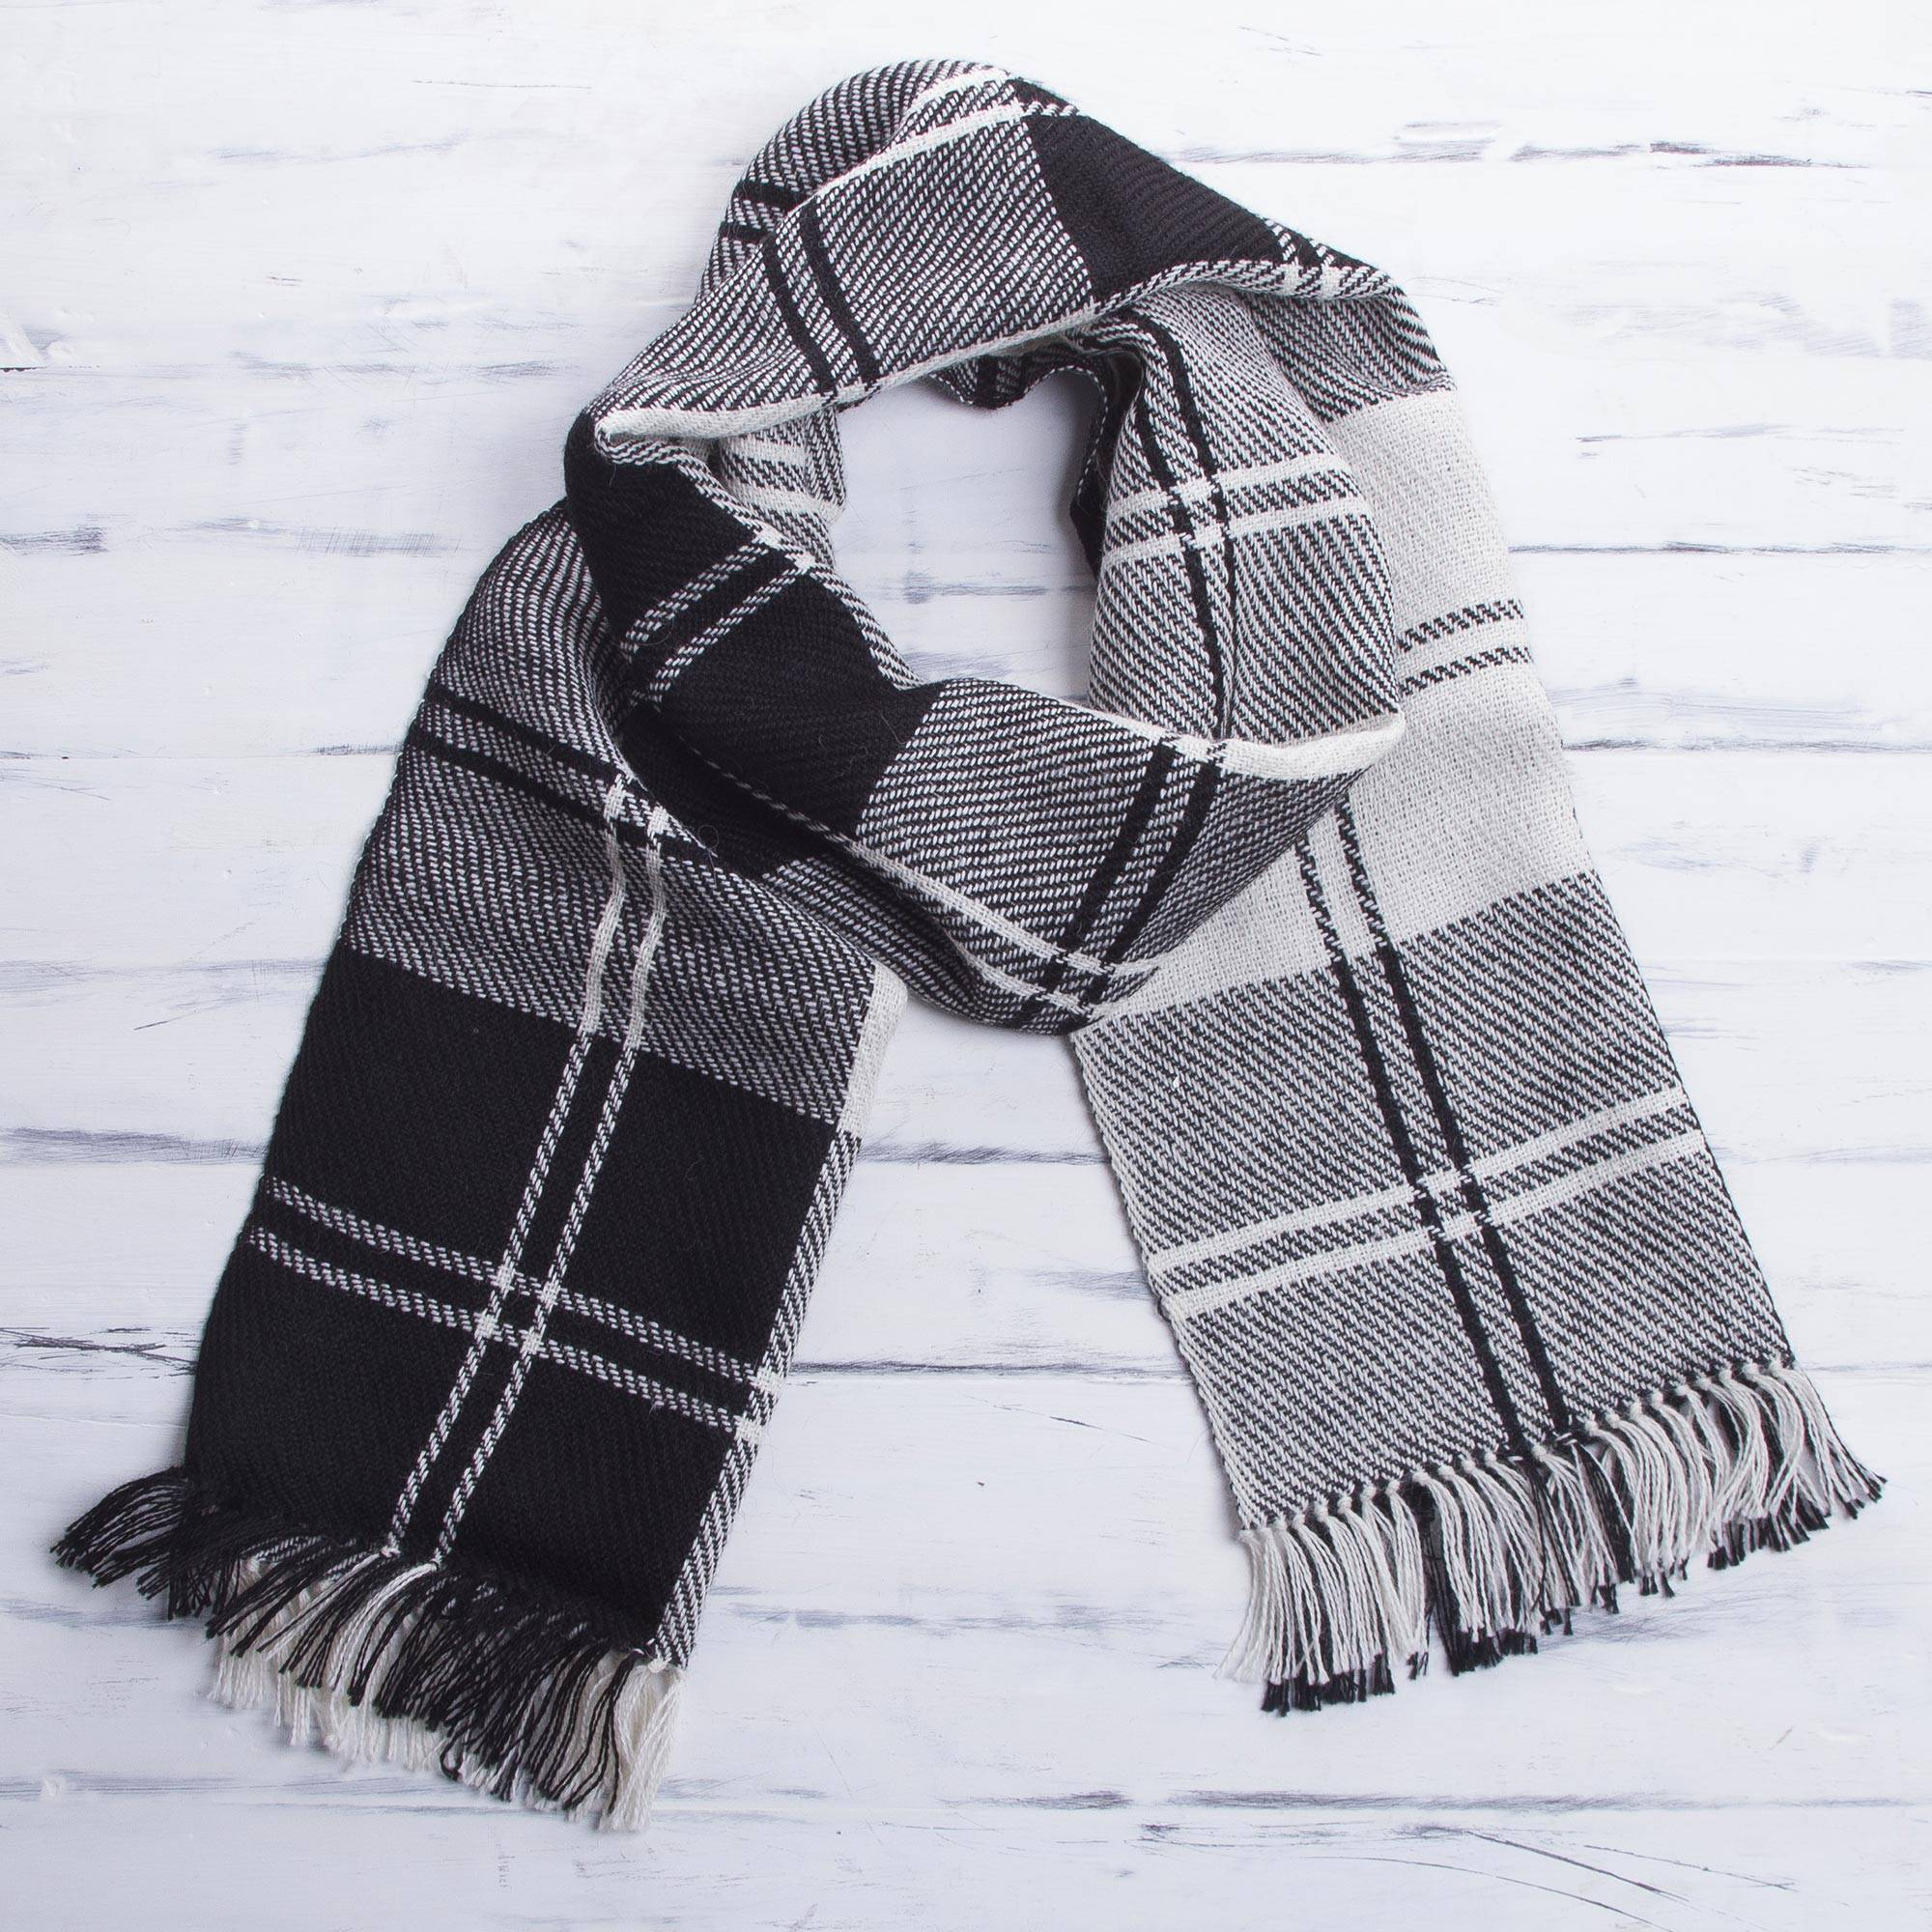 Made to Order Handmade PURE ALPACA Winter Scarf for Women and Men